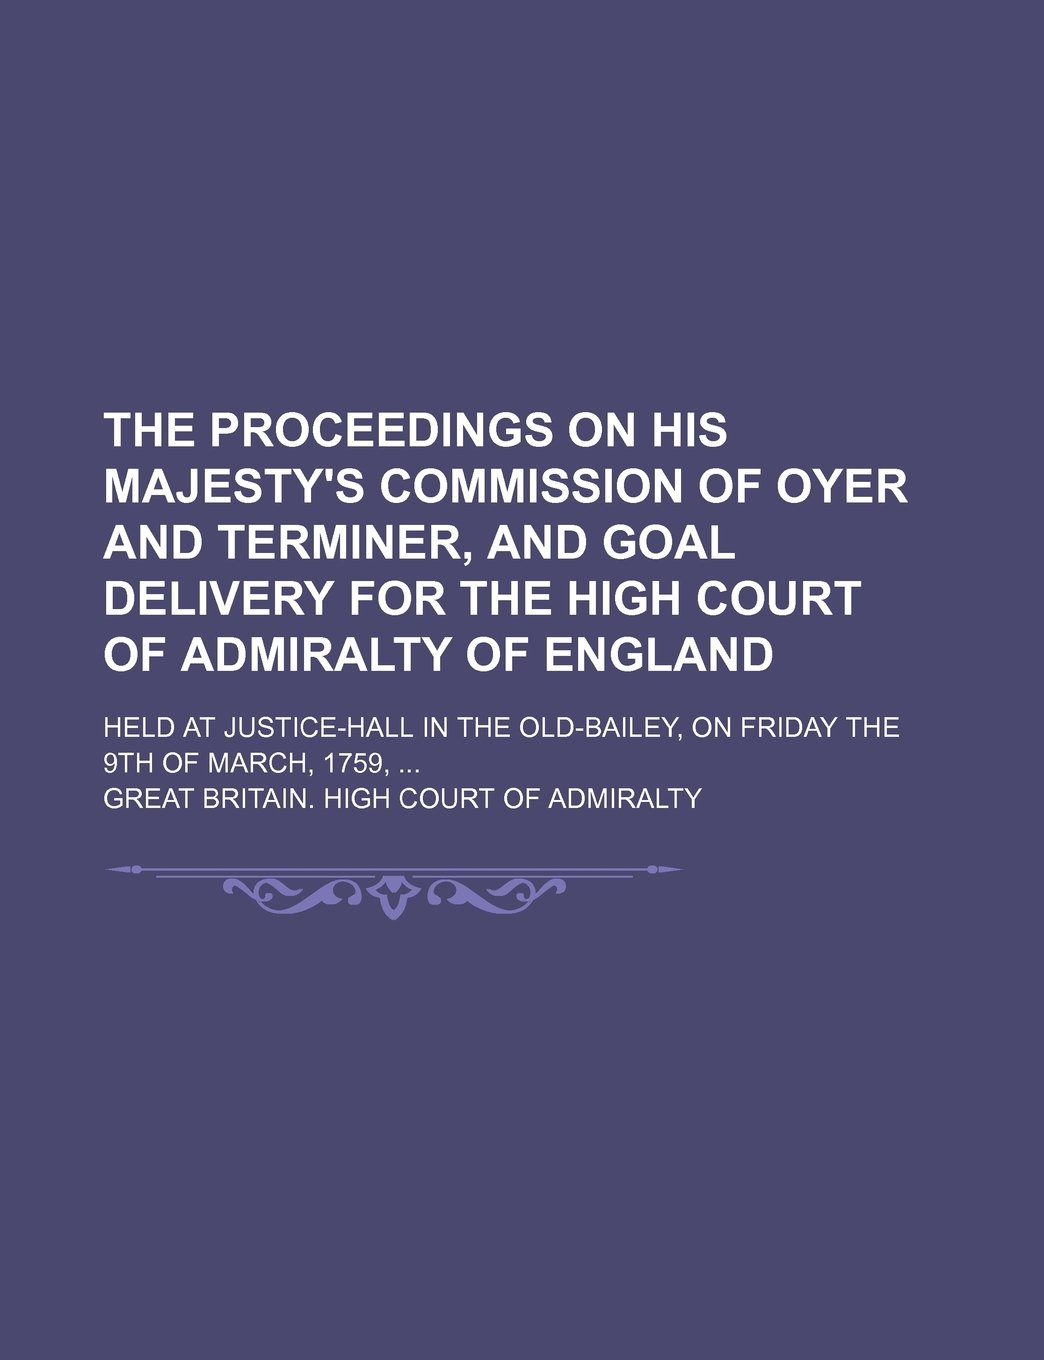 The proceedings on His Majesty's commission of oyer and terminer, and goal delivery for the High Court of Admiralty of England; held at Justice-Hall ... Old-Bailey, on Friday the 9th of March, 1759, PDF